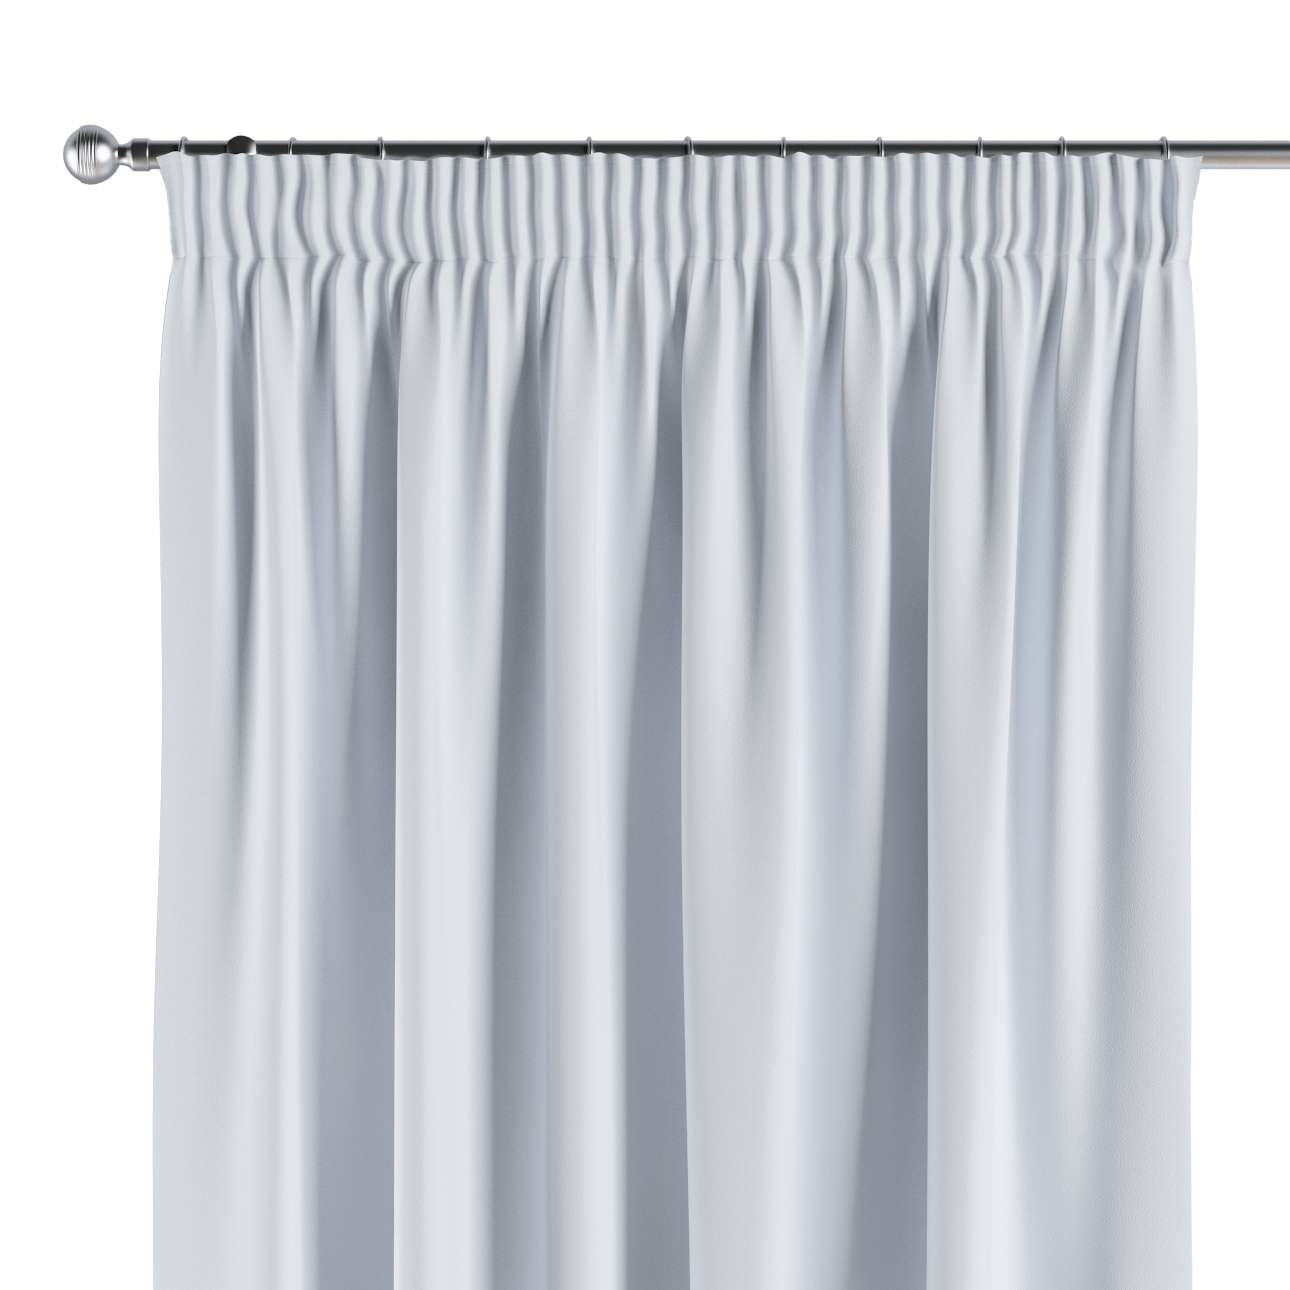 Blackout Pencil Pleat Curtains Off White Pale Greyish